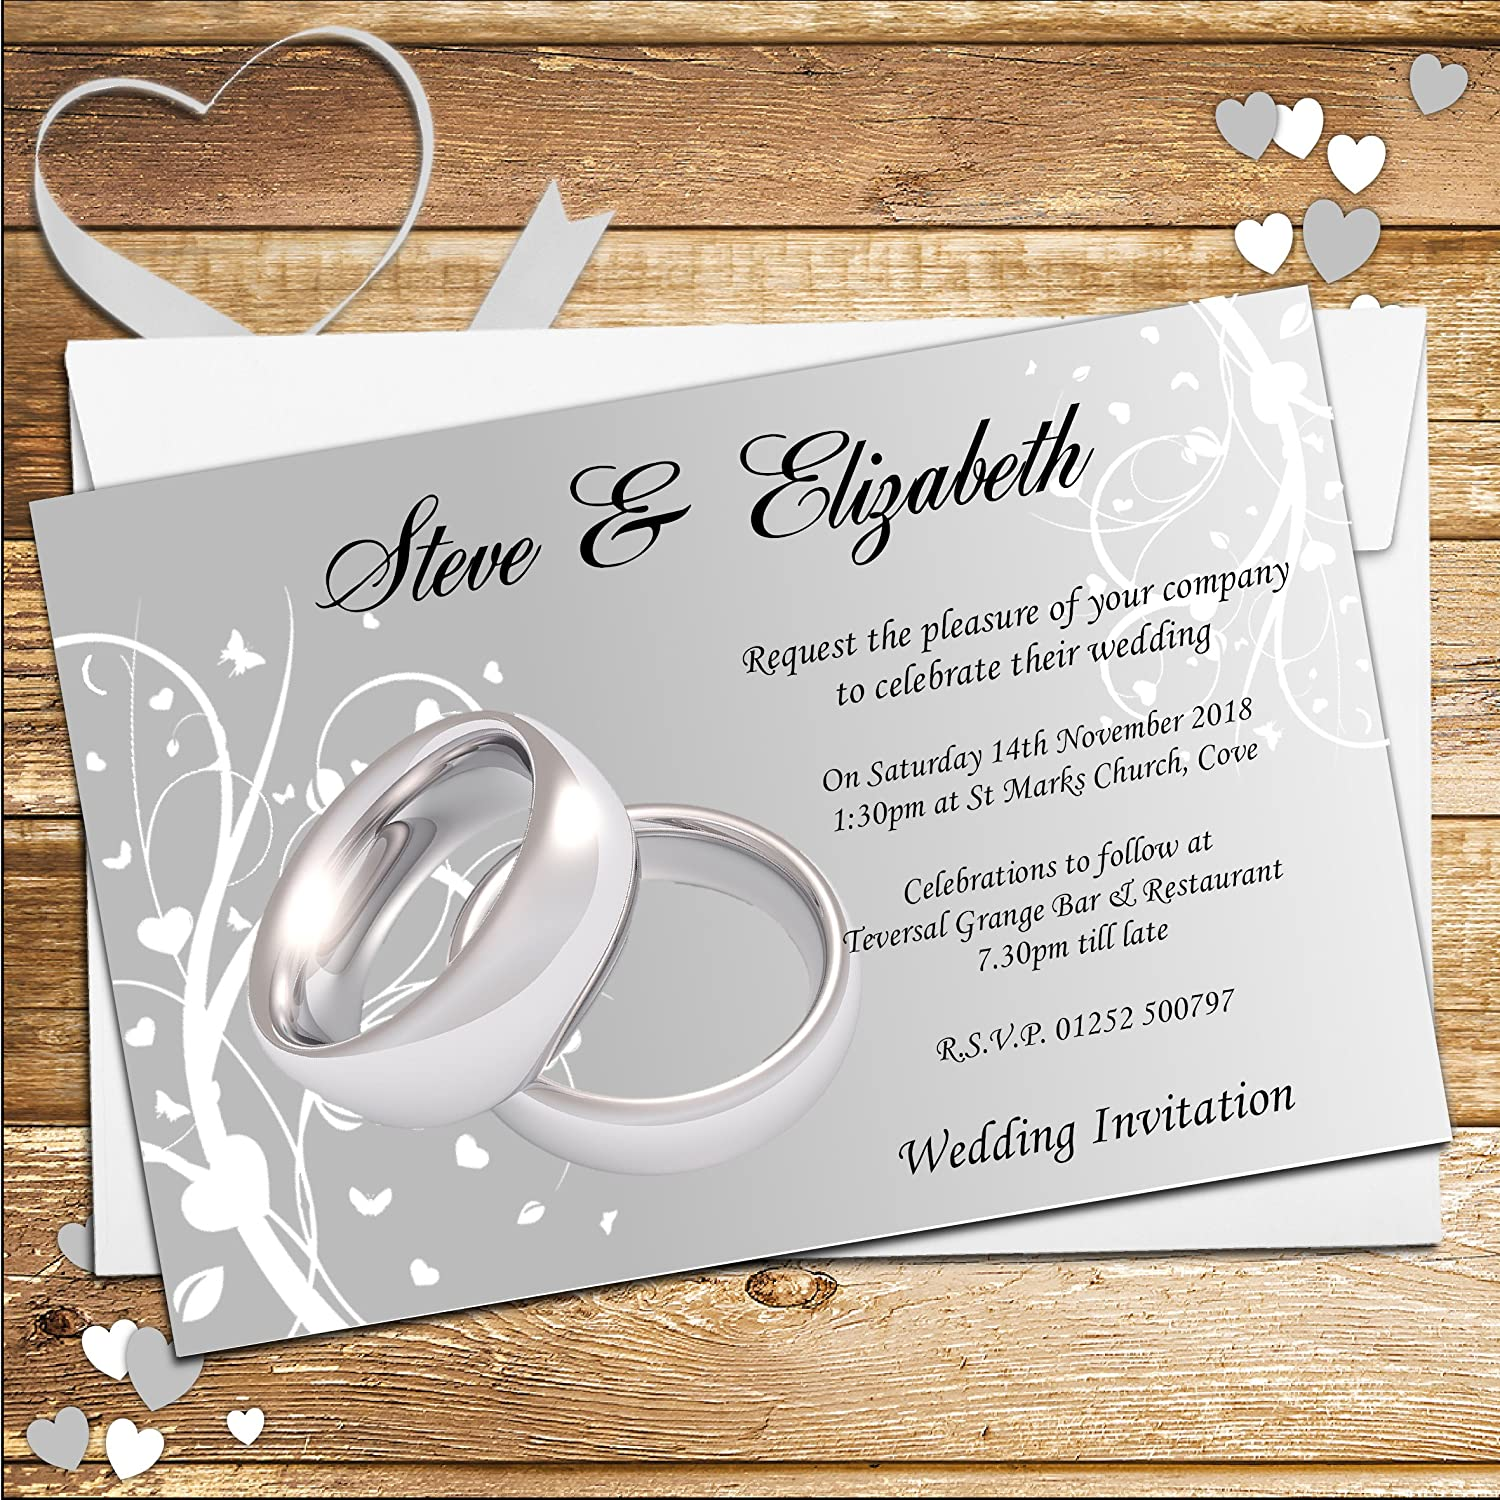 10 personalised silver rings wedding invitations n44 amazon 10 personalised silver rings wedding invitations n44 amazon kitchen home stopboris